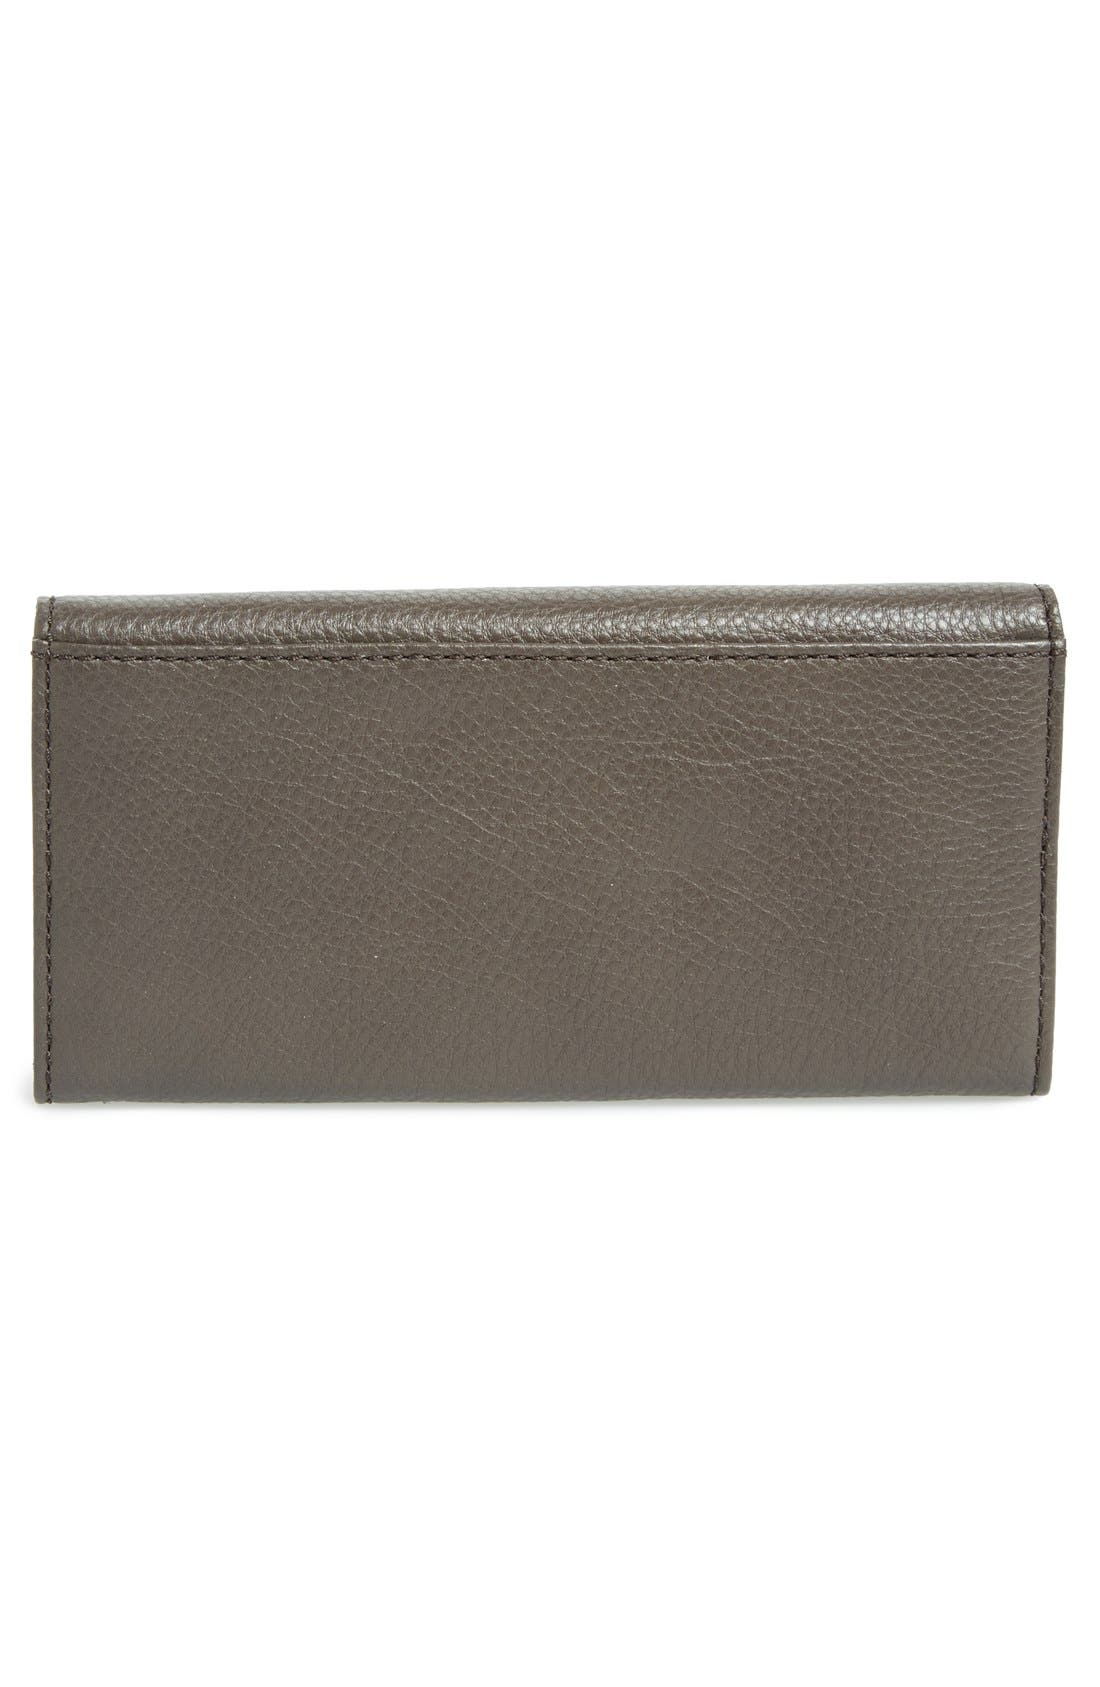 Alternate Image 3  - MARC BY MARC JACOBS 'Classic Q - Long' Trifold Wallet